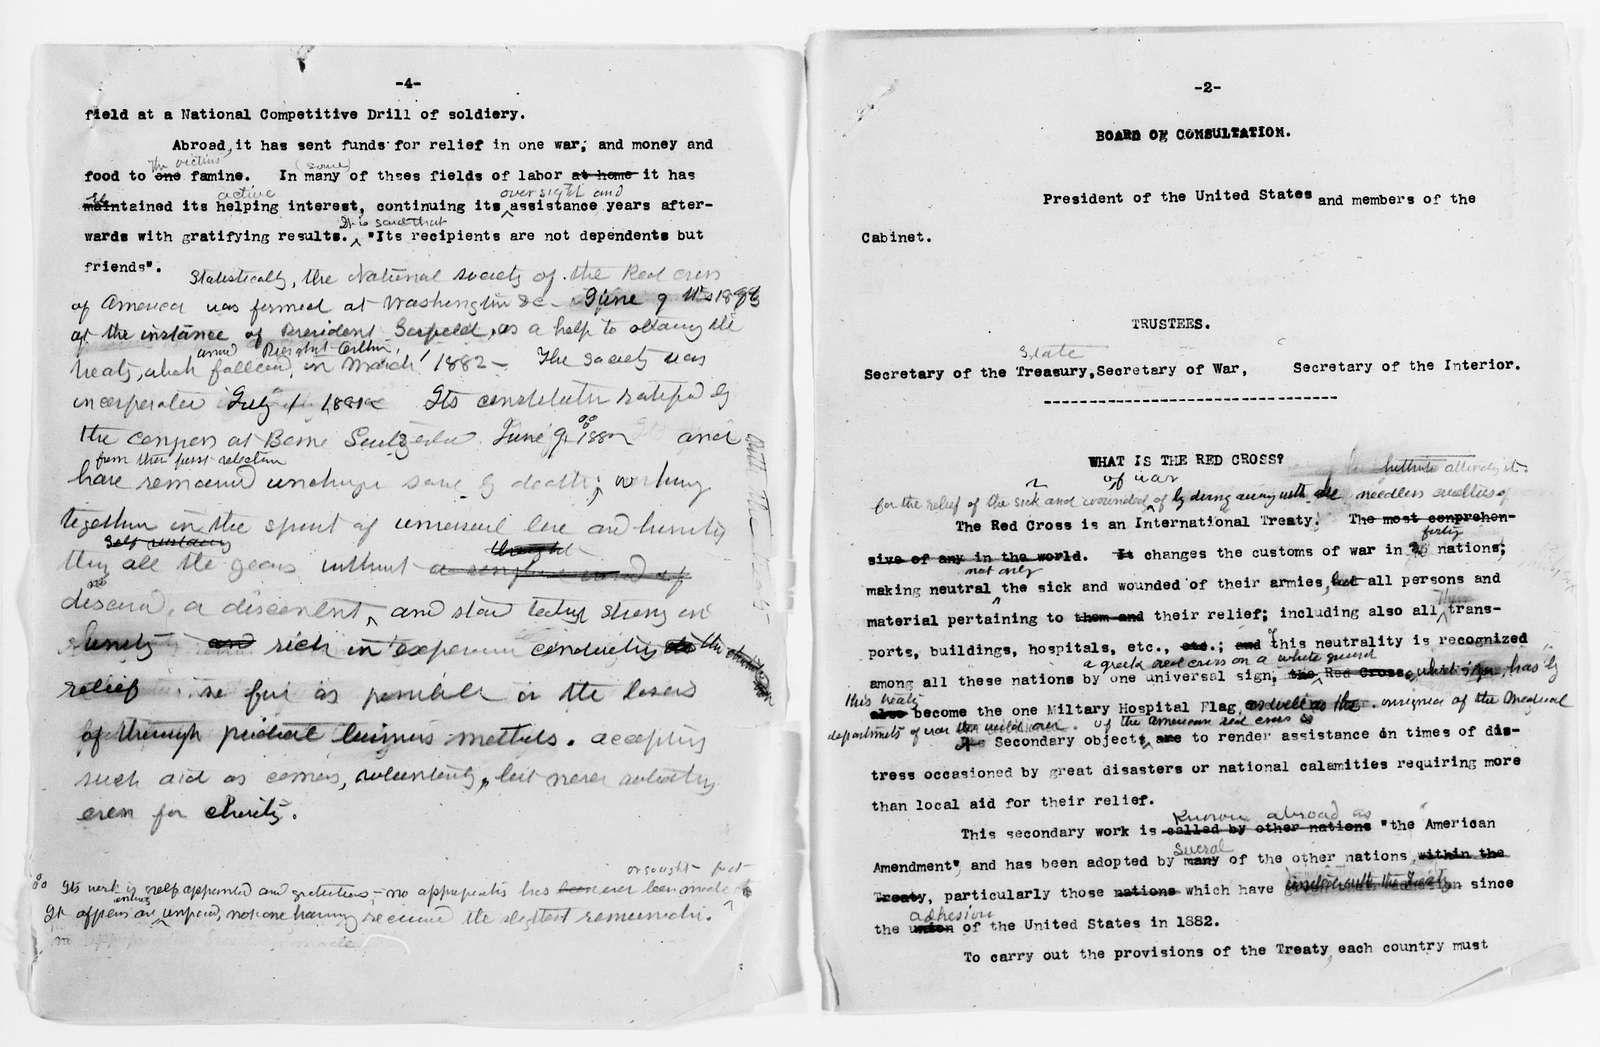 Clara Barton Papers: Speeches and Writings File, 1849-1947; Articles and other writings; Drafts; Undated